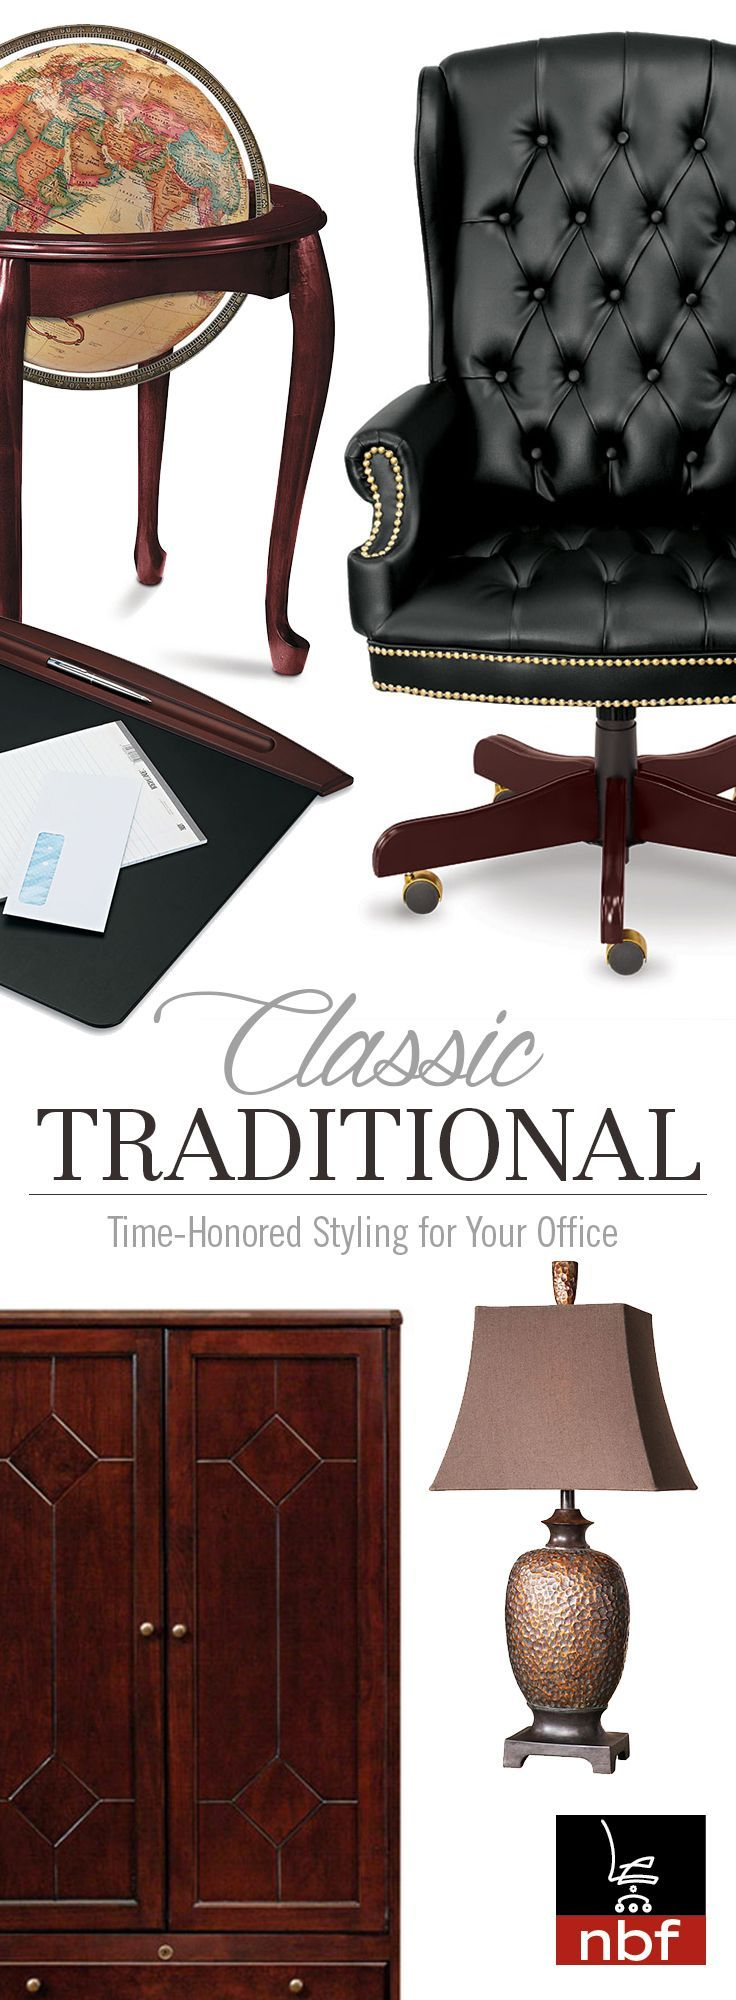 Classic Traditional Office Furniture - Time-Honored Styling for Your Office